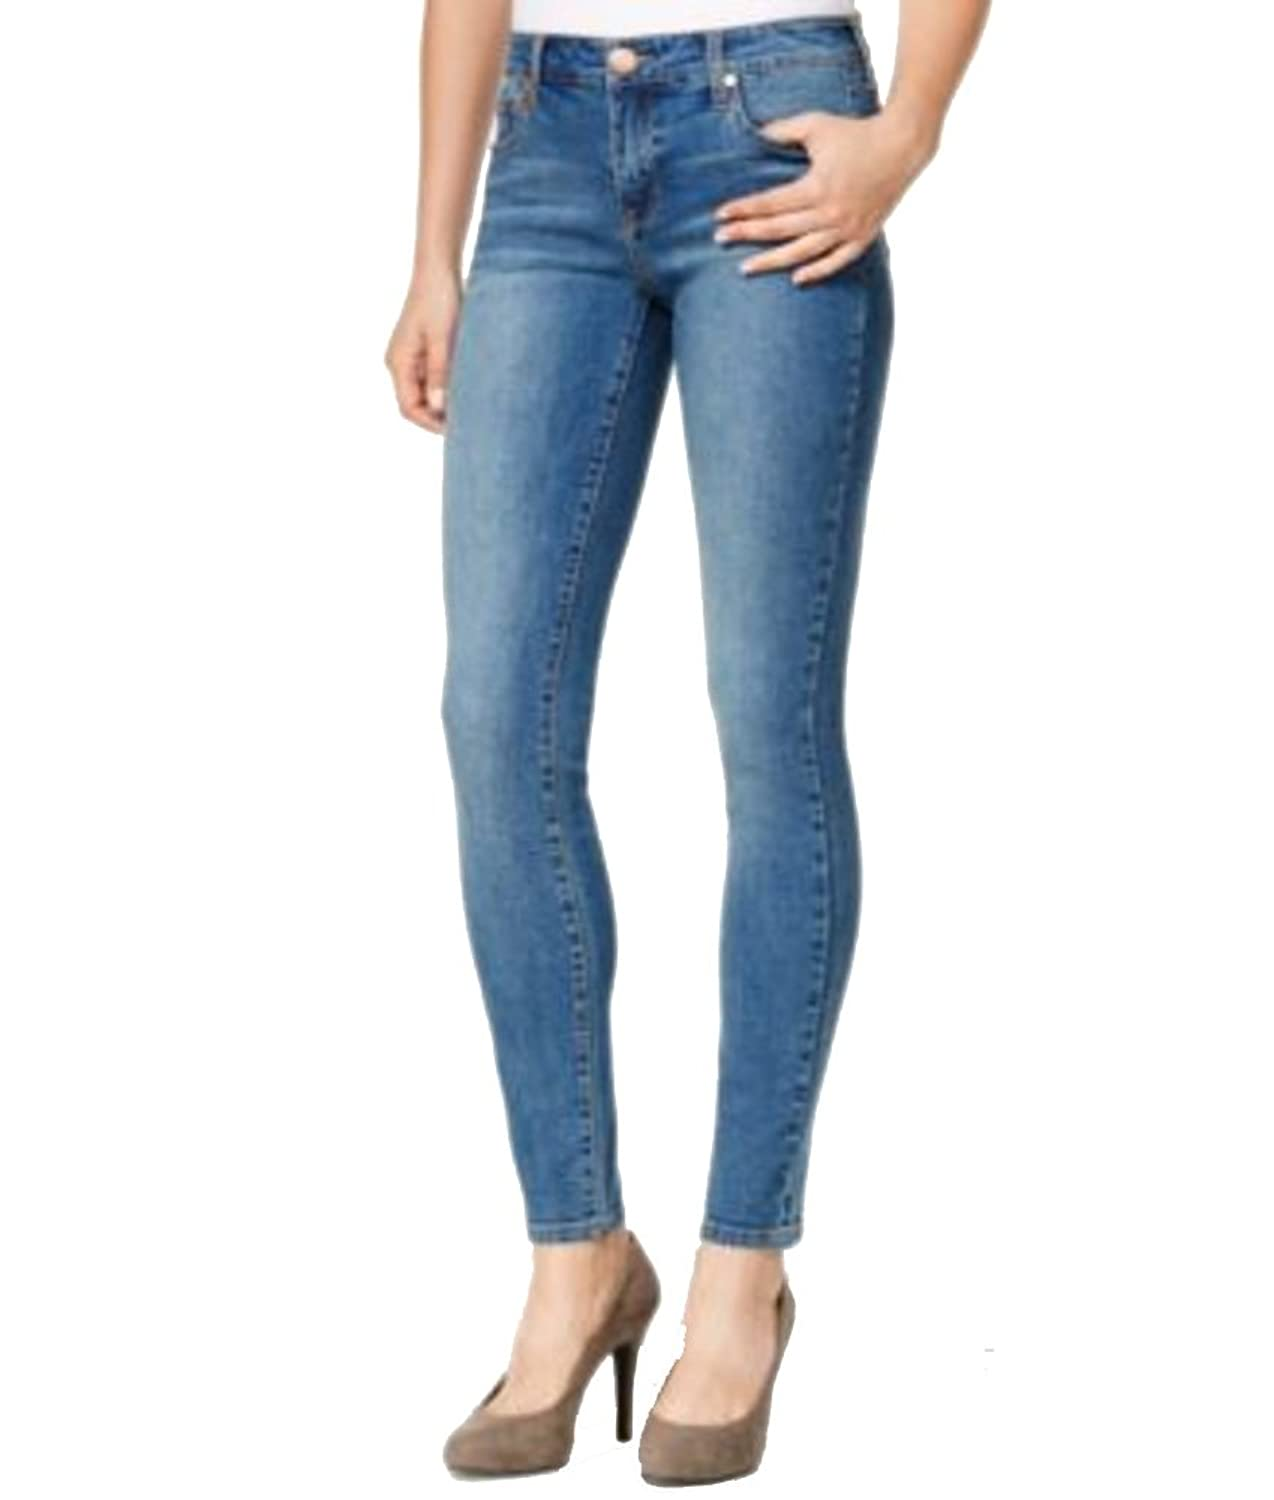 Celebrity Pink Body Love Juniors' The Lifter Light Wash Skinny Jeans